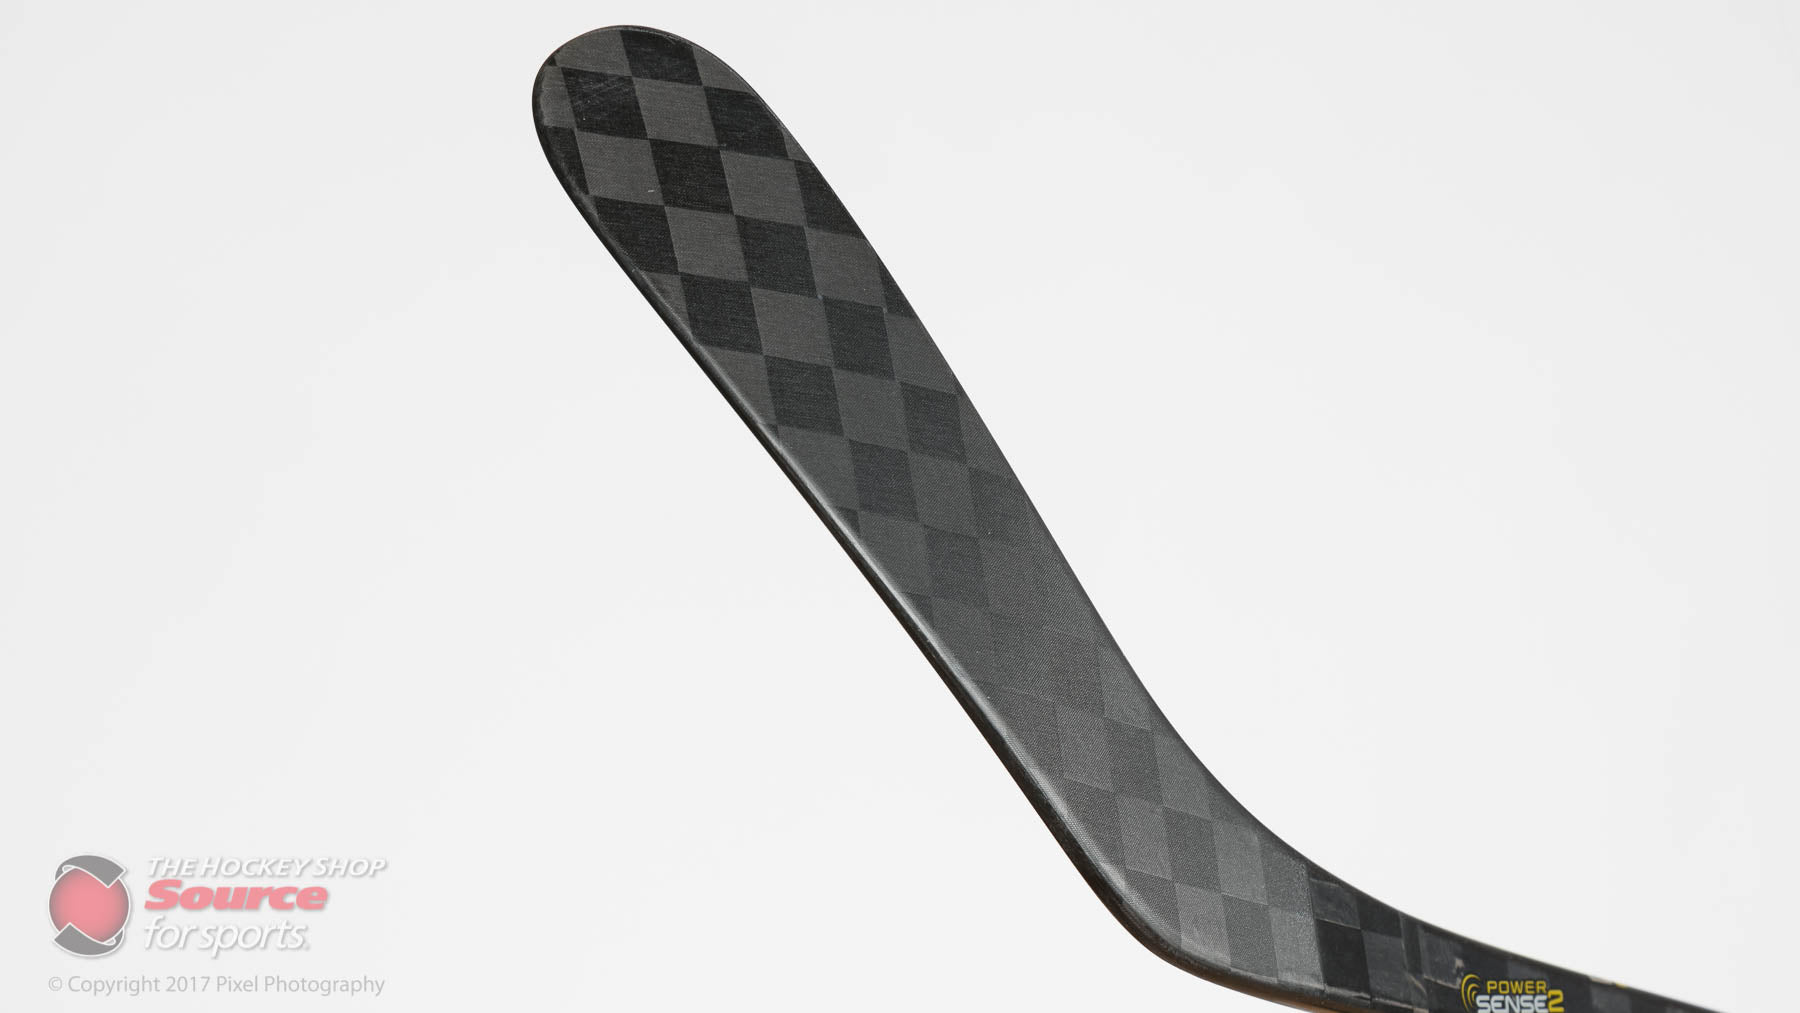 3c1abb00ca5 2017 Bauer Supreme 1S Stick Review – The Hockey Shop Source For Sports